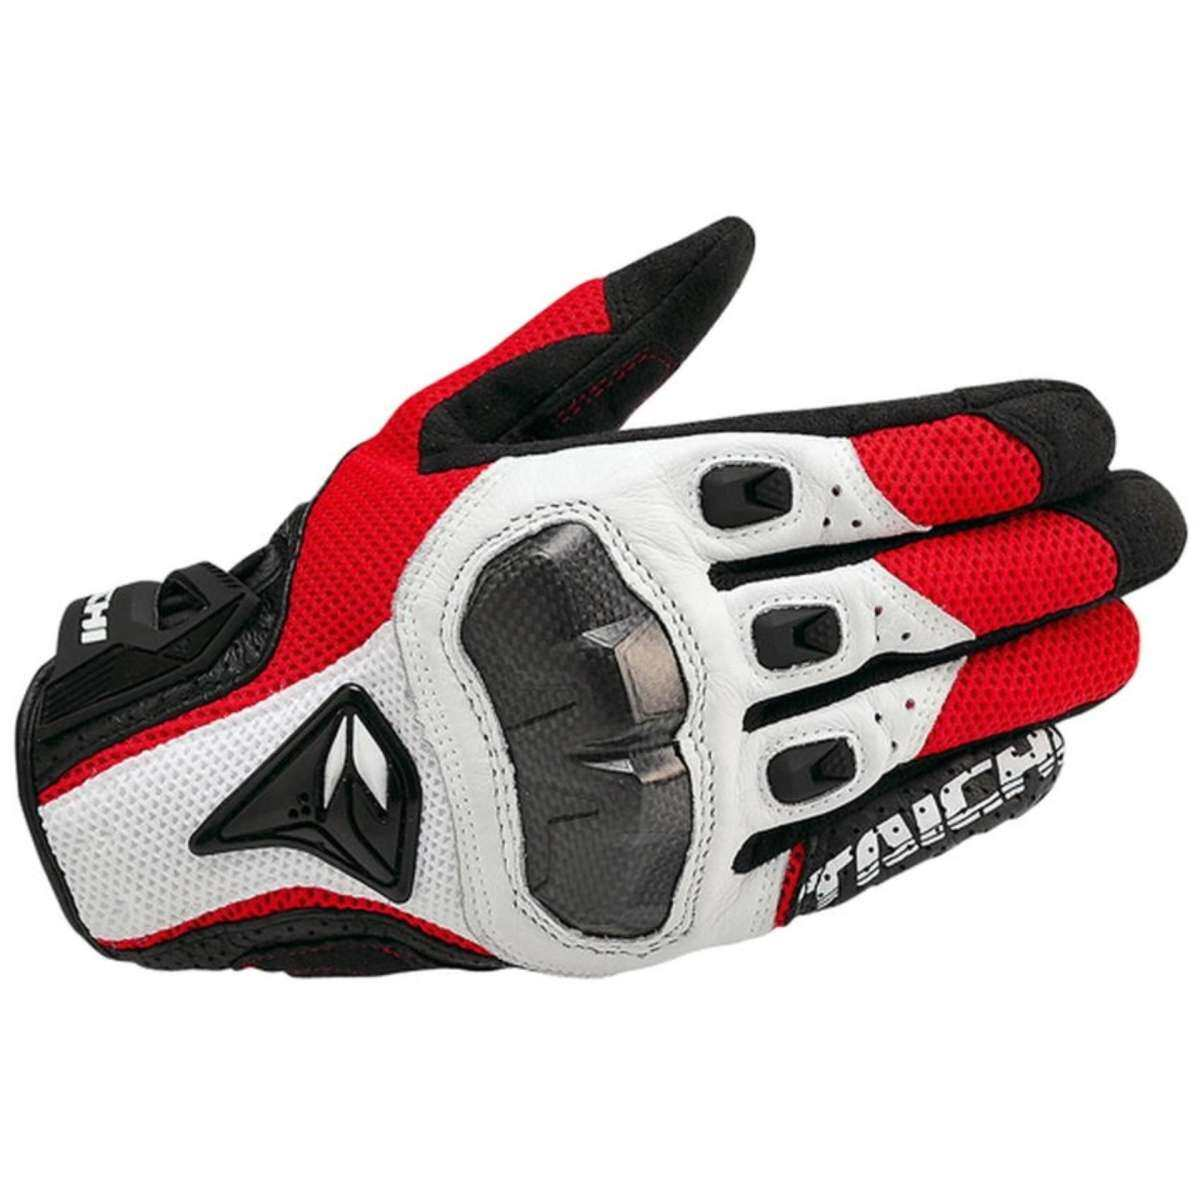 DualX RS Taichi RST391 Mens Perforated leather Motorcycle Mesh Gloves- XL size